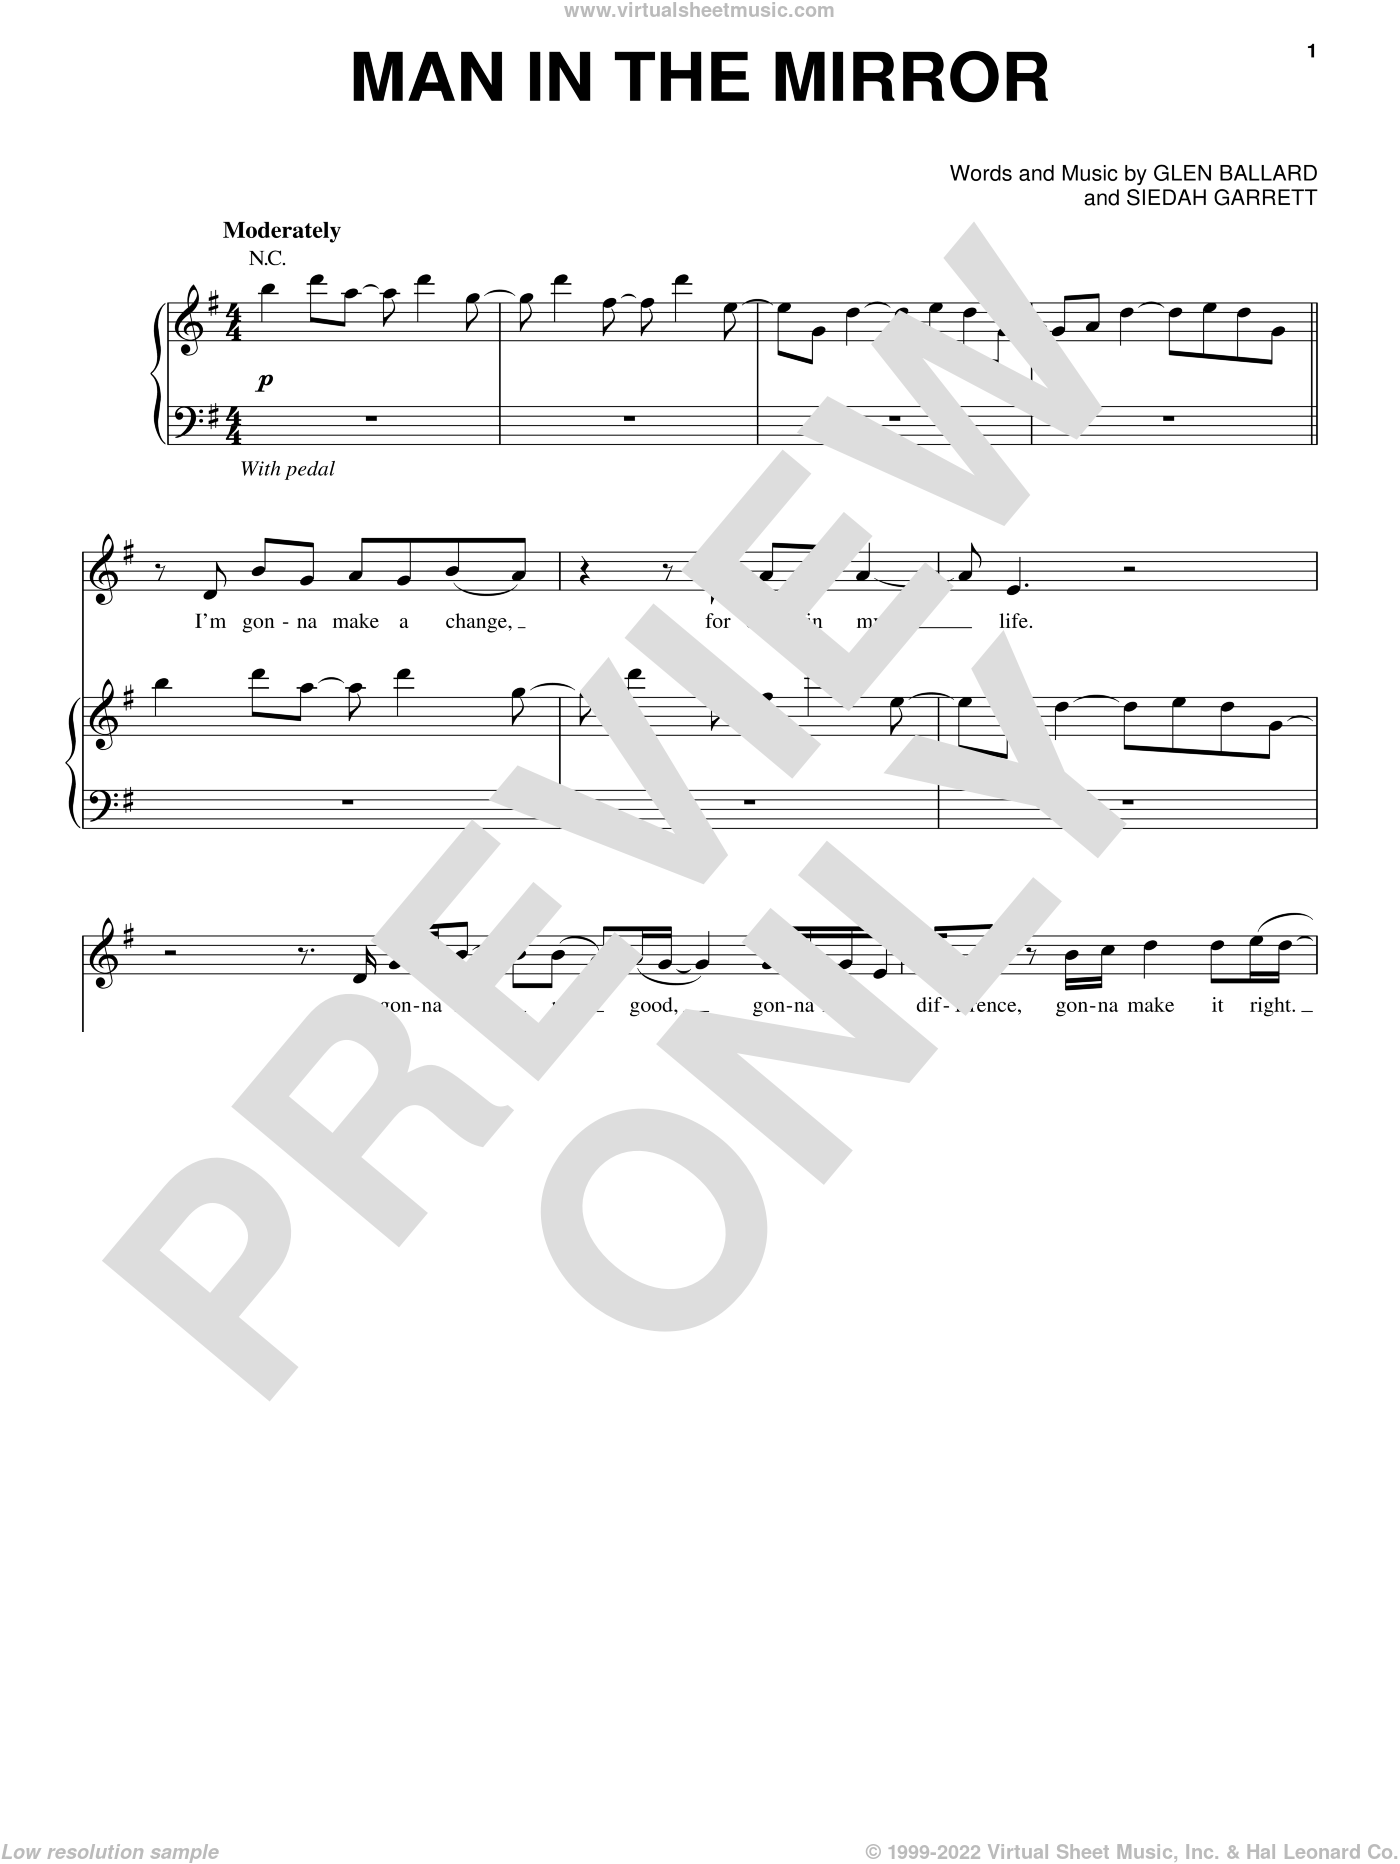 Man In The Mirror sheet music for voice, piano or guitar by Siedah Garrett